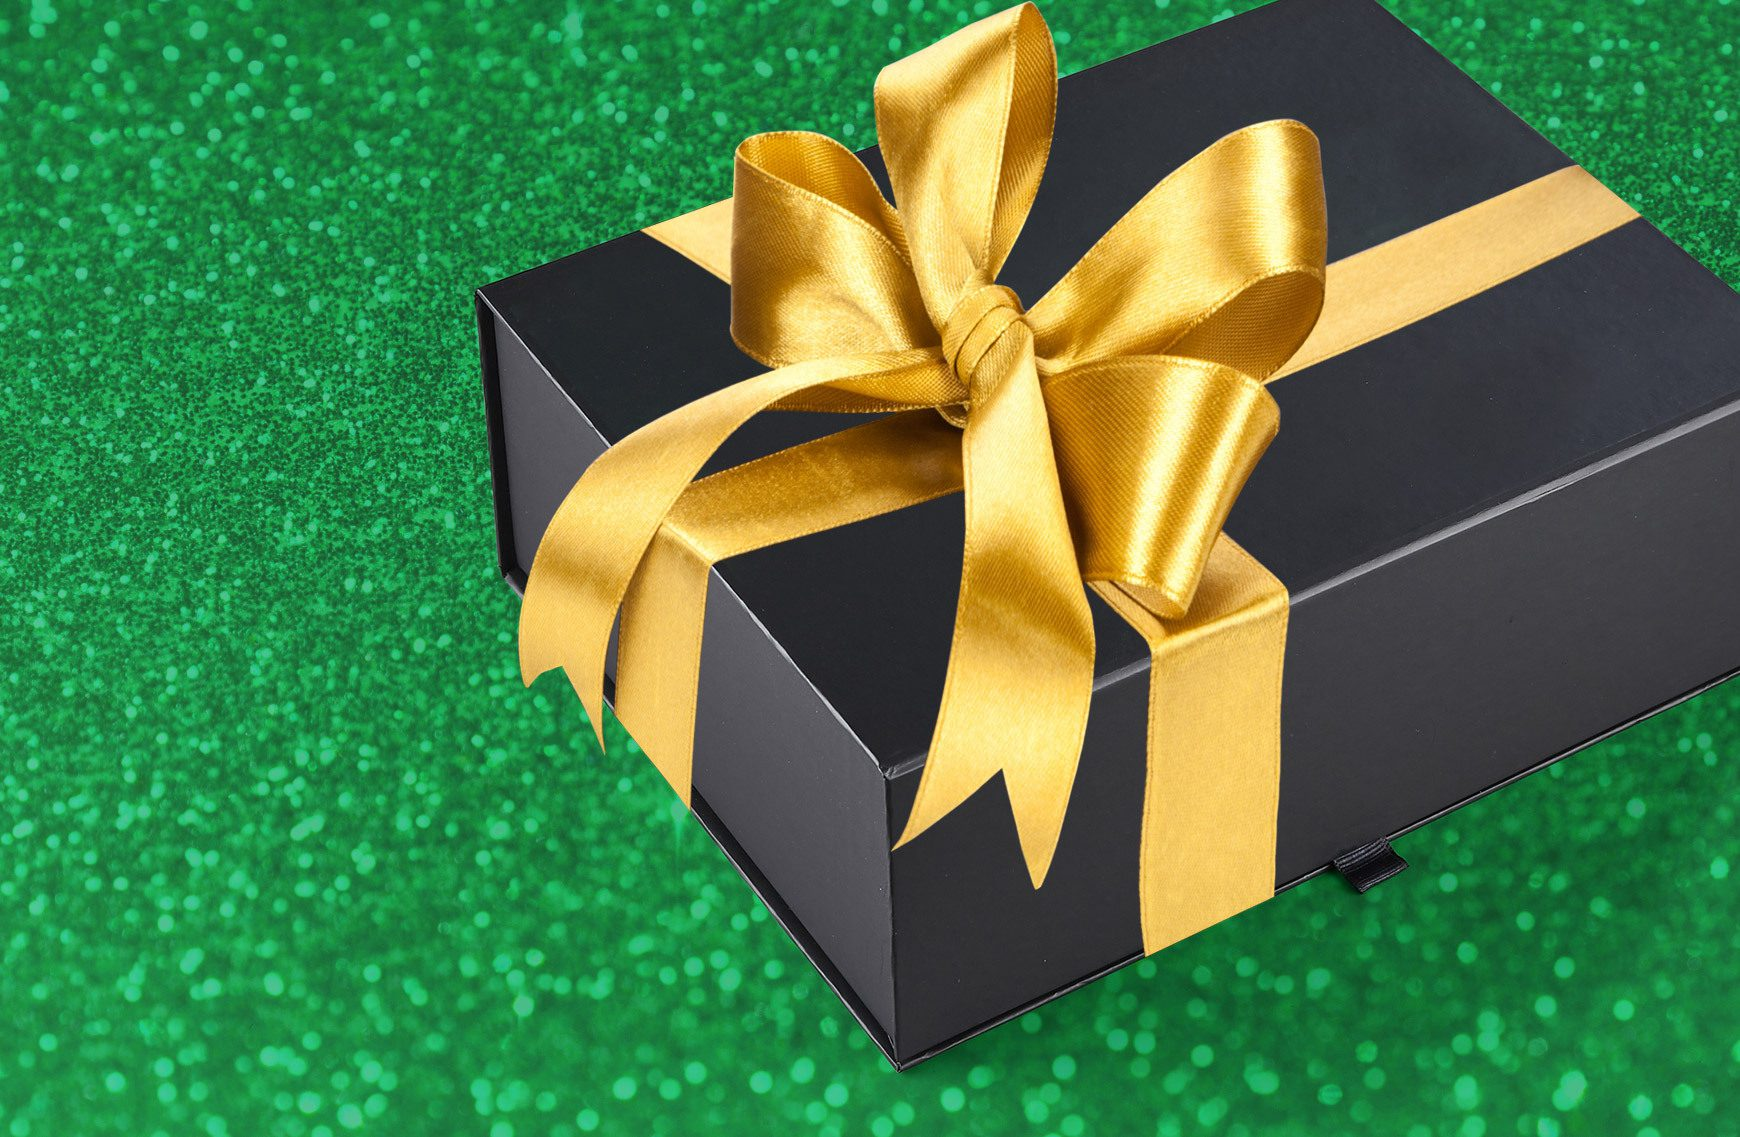 Black box wrapped with gold bow on sparkly green background